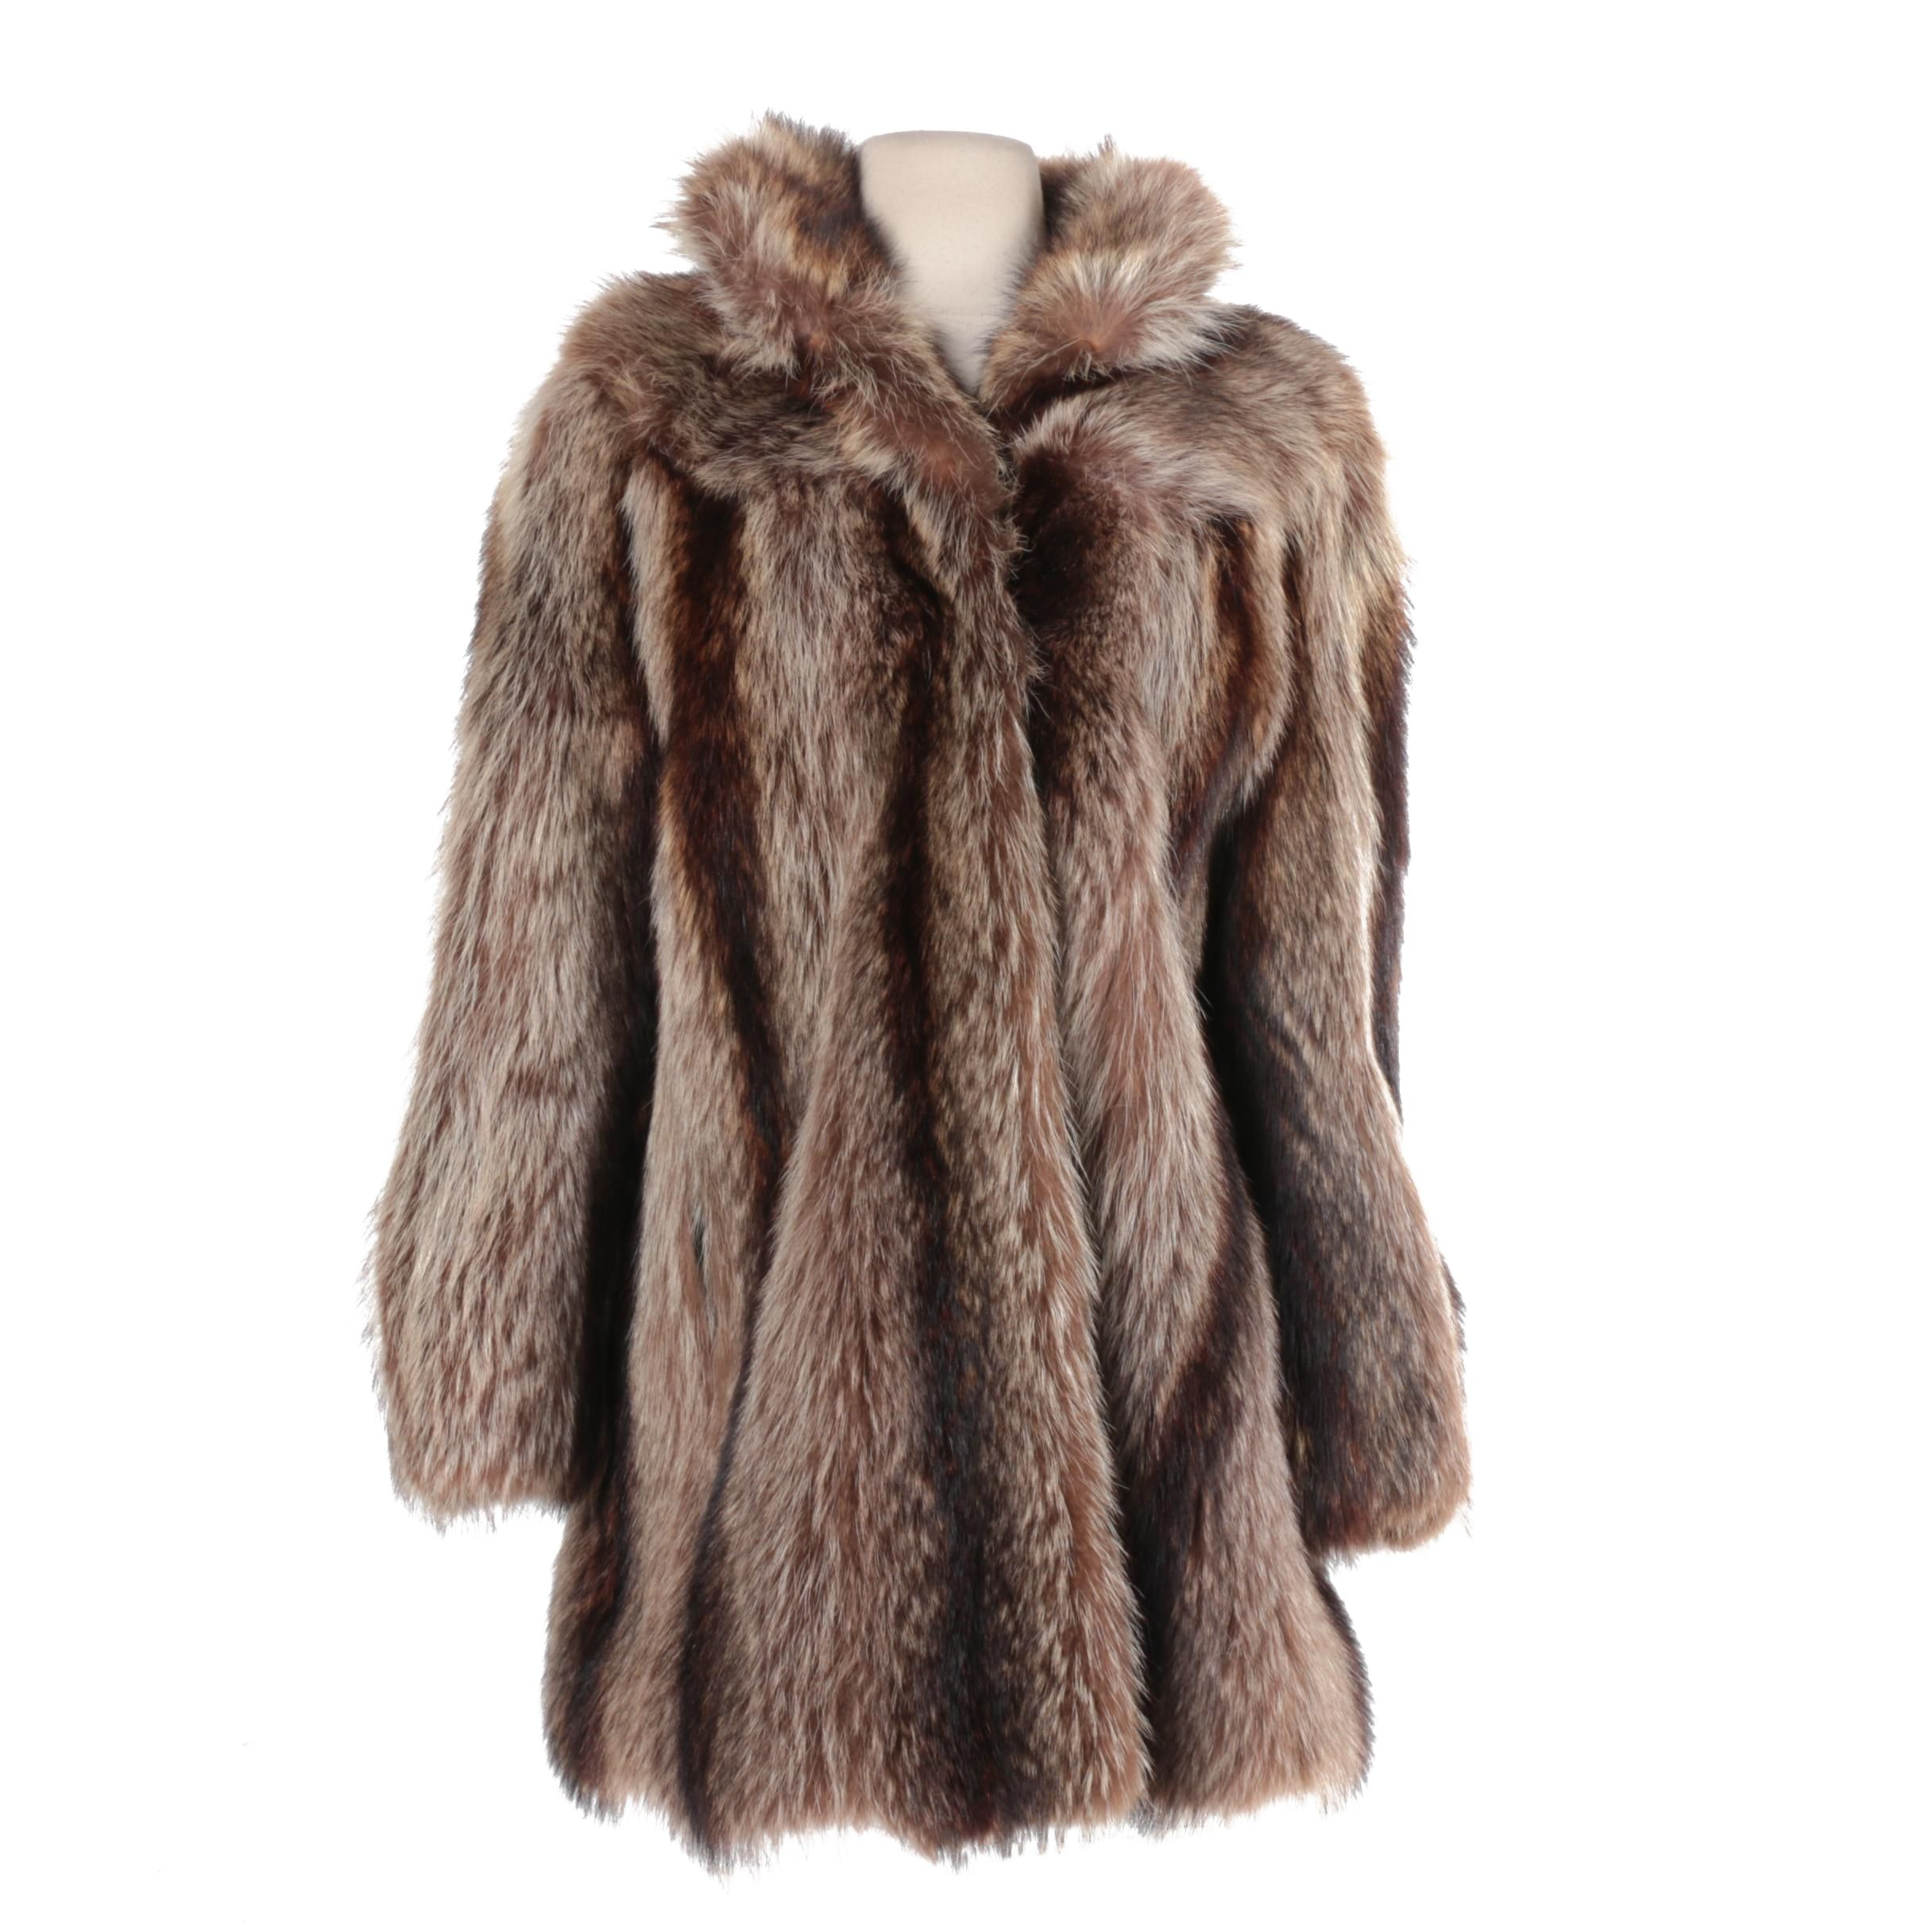 Furs by Bricker Raccoon Fur Coat with Attached Raccoon Tail